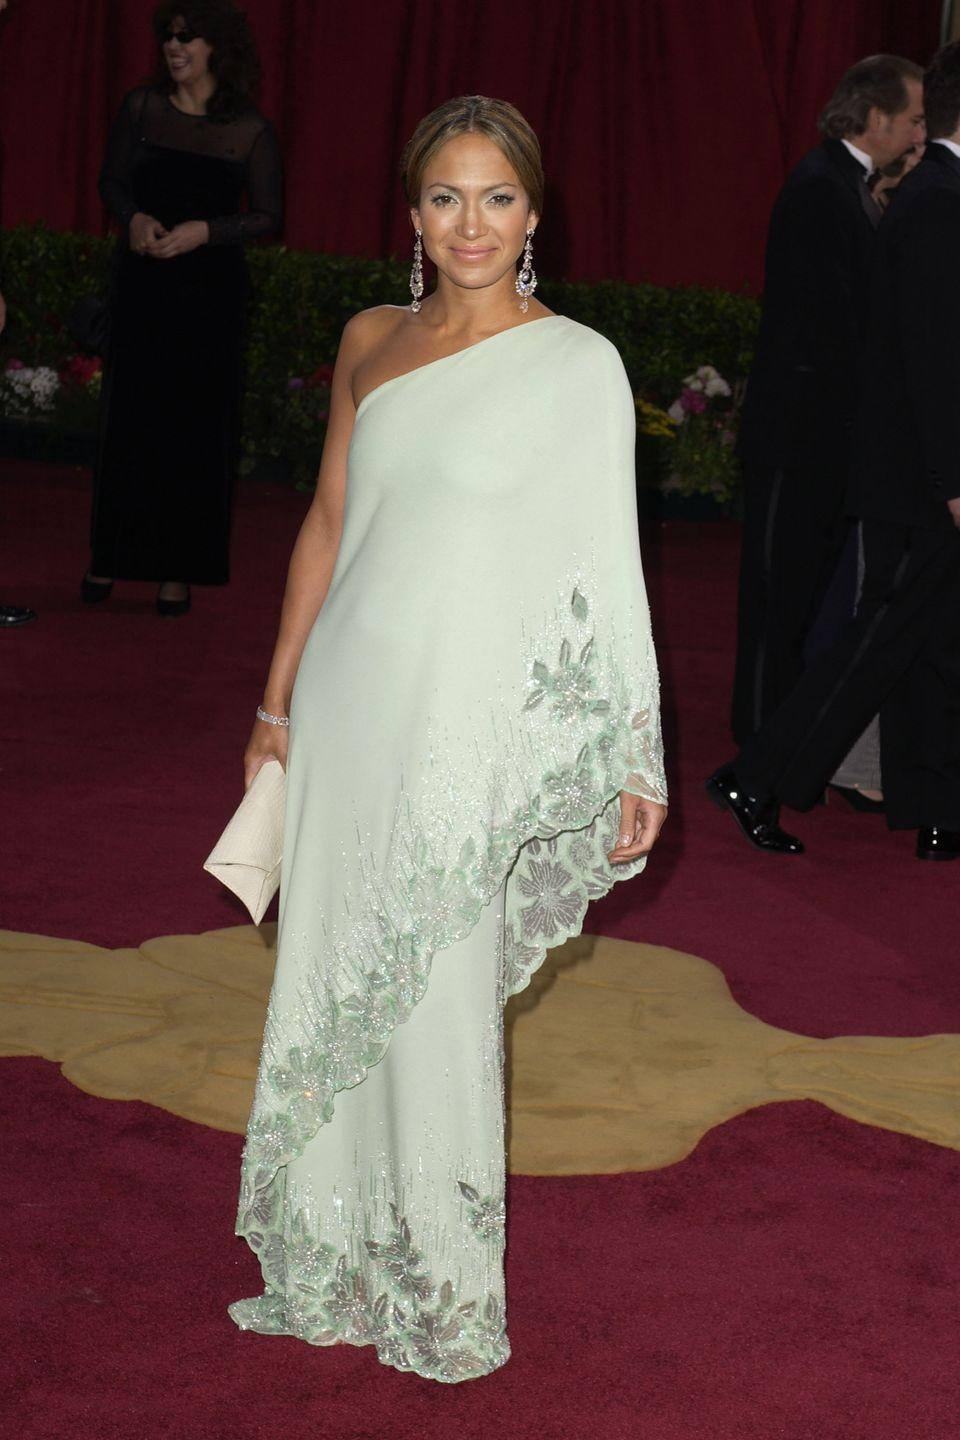 <p>While the shape of the Valentino dress Jennifer Lopez wore to the 2003 Academy Awards is quite different from Tiana's voluminous ball gown, the mint green color and the floral motifs are spot on.</p>